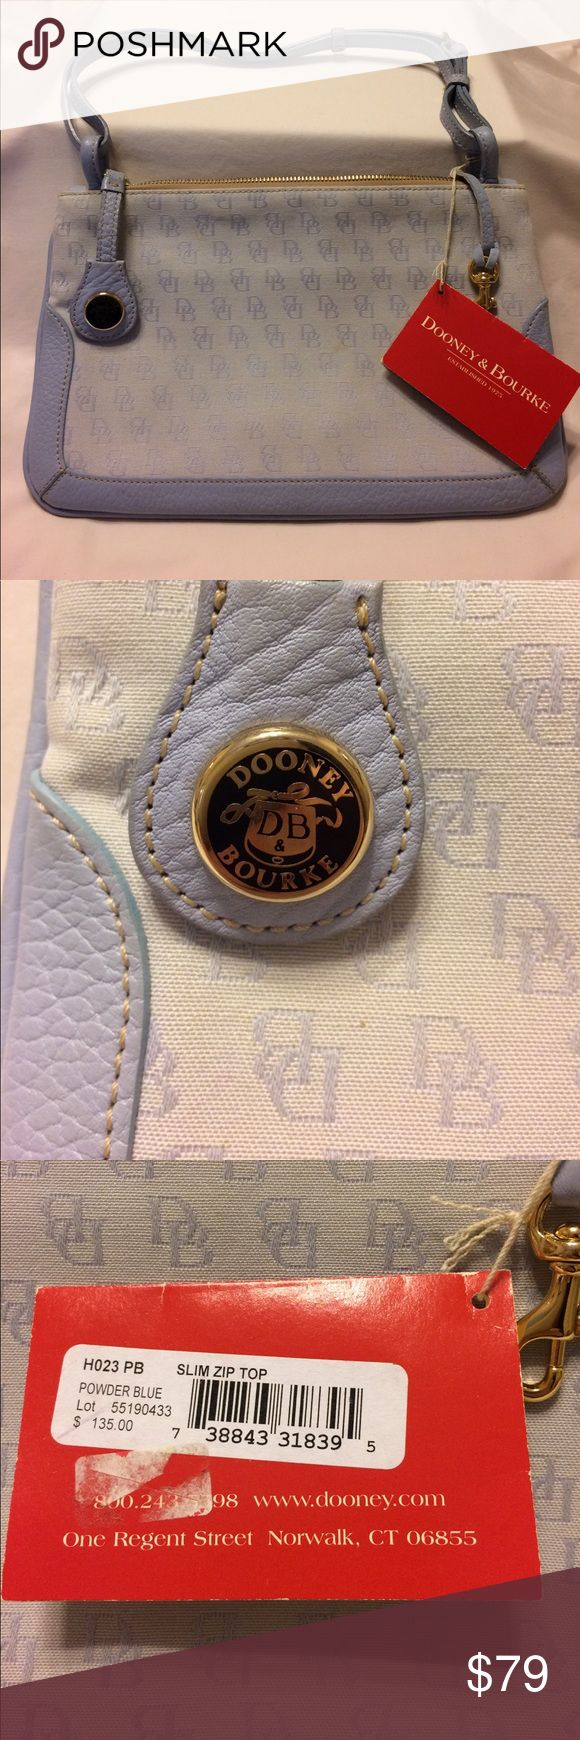 NWT Purse by Dooney & Bourke Pale blue purse with zippered pocket inside plus small pocket. Width is 11 inches and height is 7 1/4 and strap is 20 inches doubled (meaning up to 38 inches). New, never used but has two small spots( see photo). Dooney & Bourke Bags Shoulder Bags